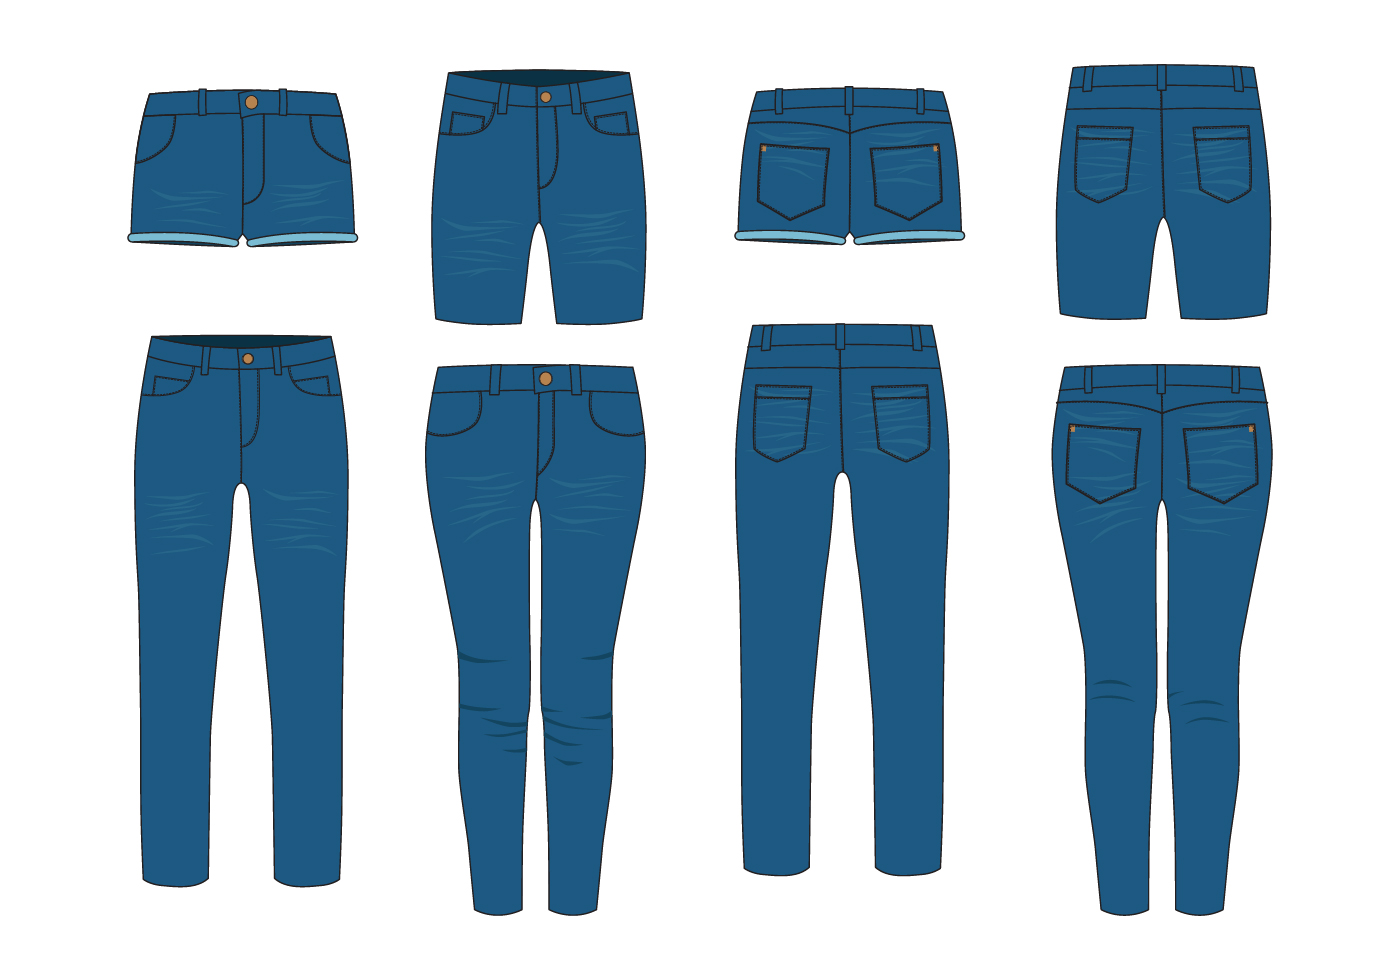 Jeans Free Vector Art - (2124 Free Downloads)